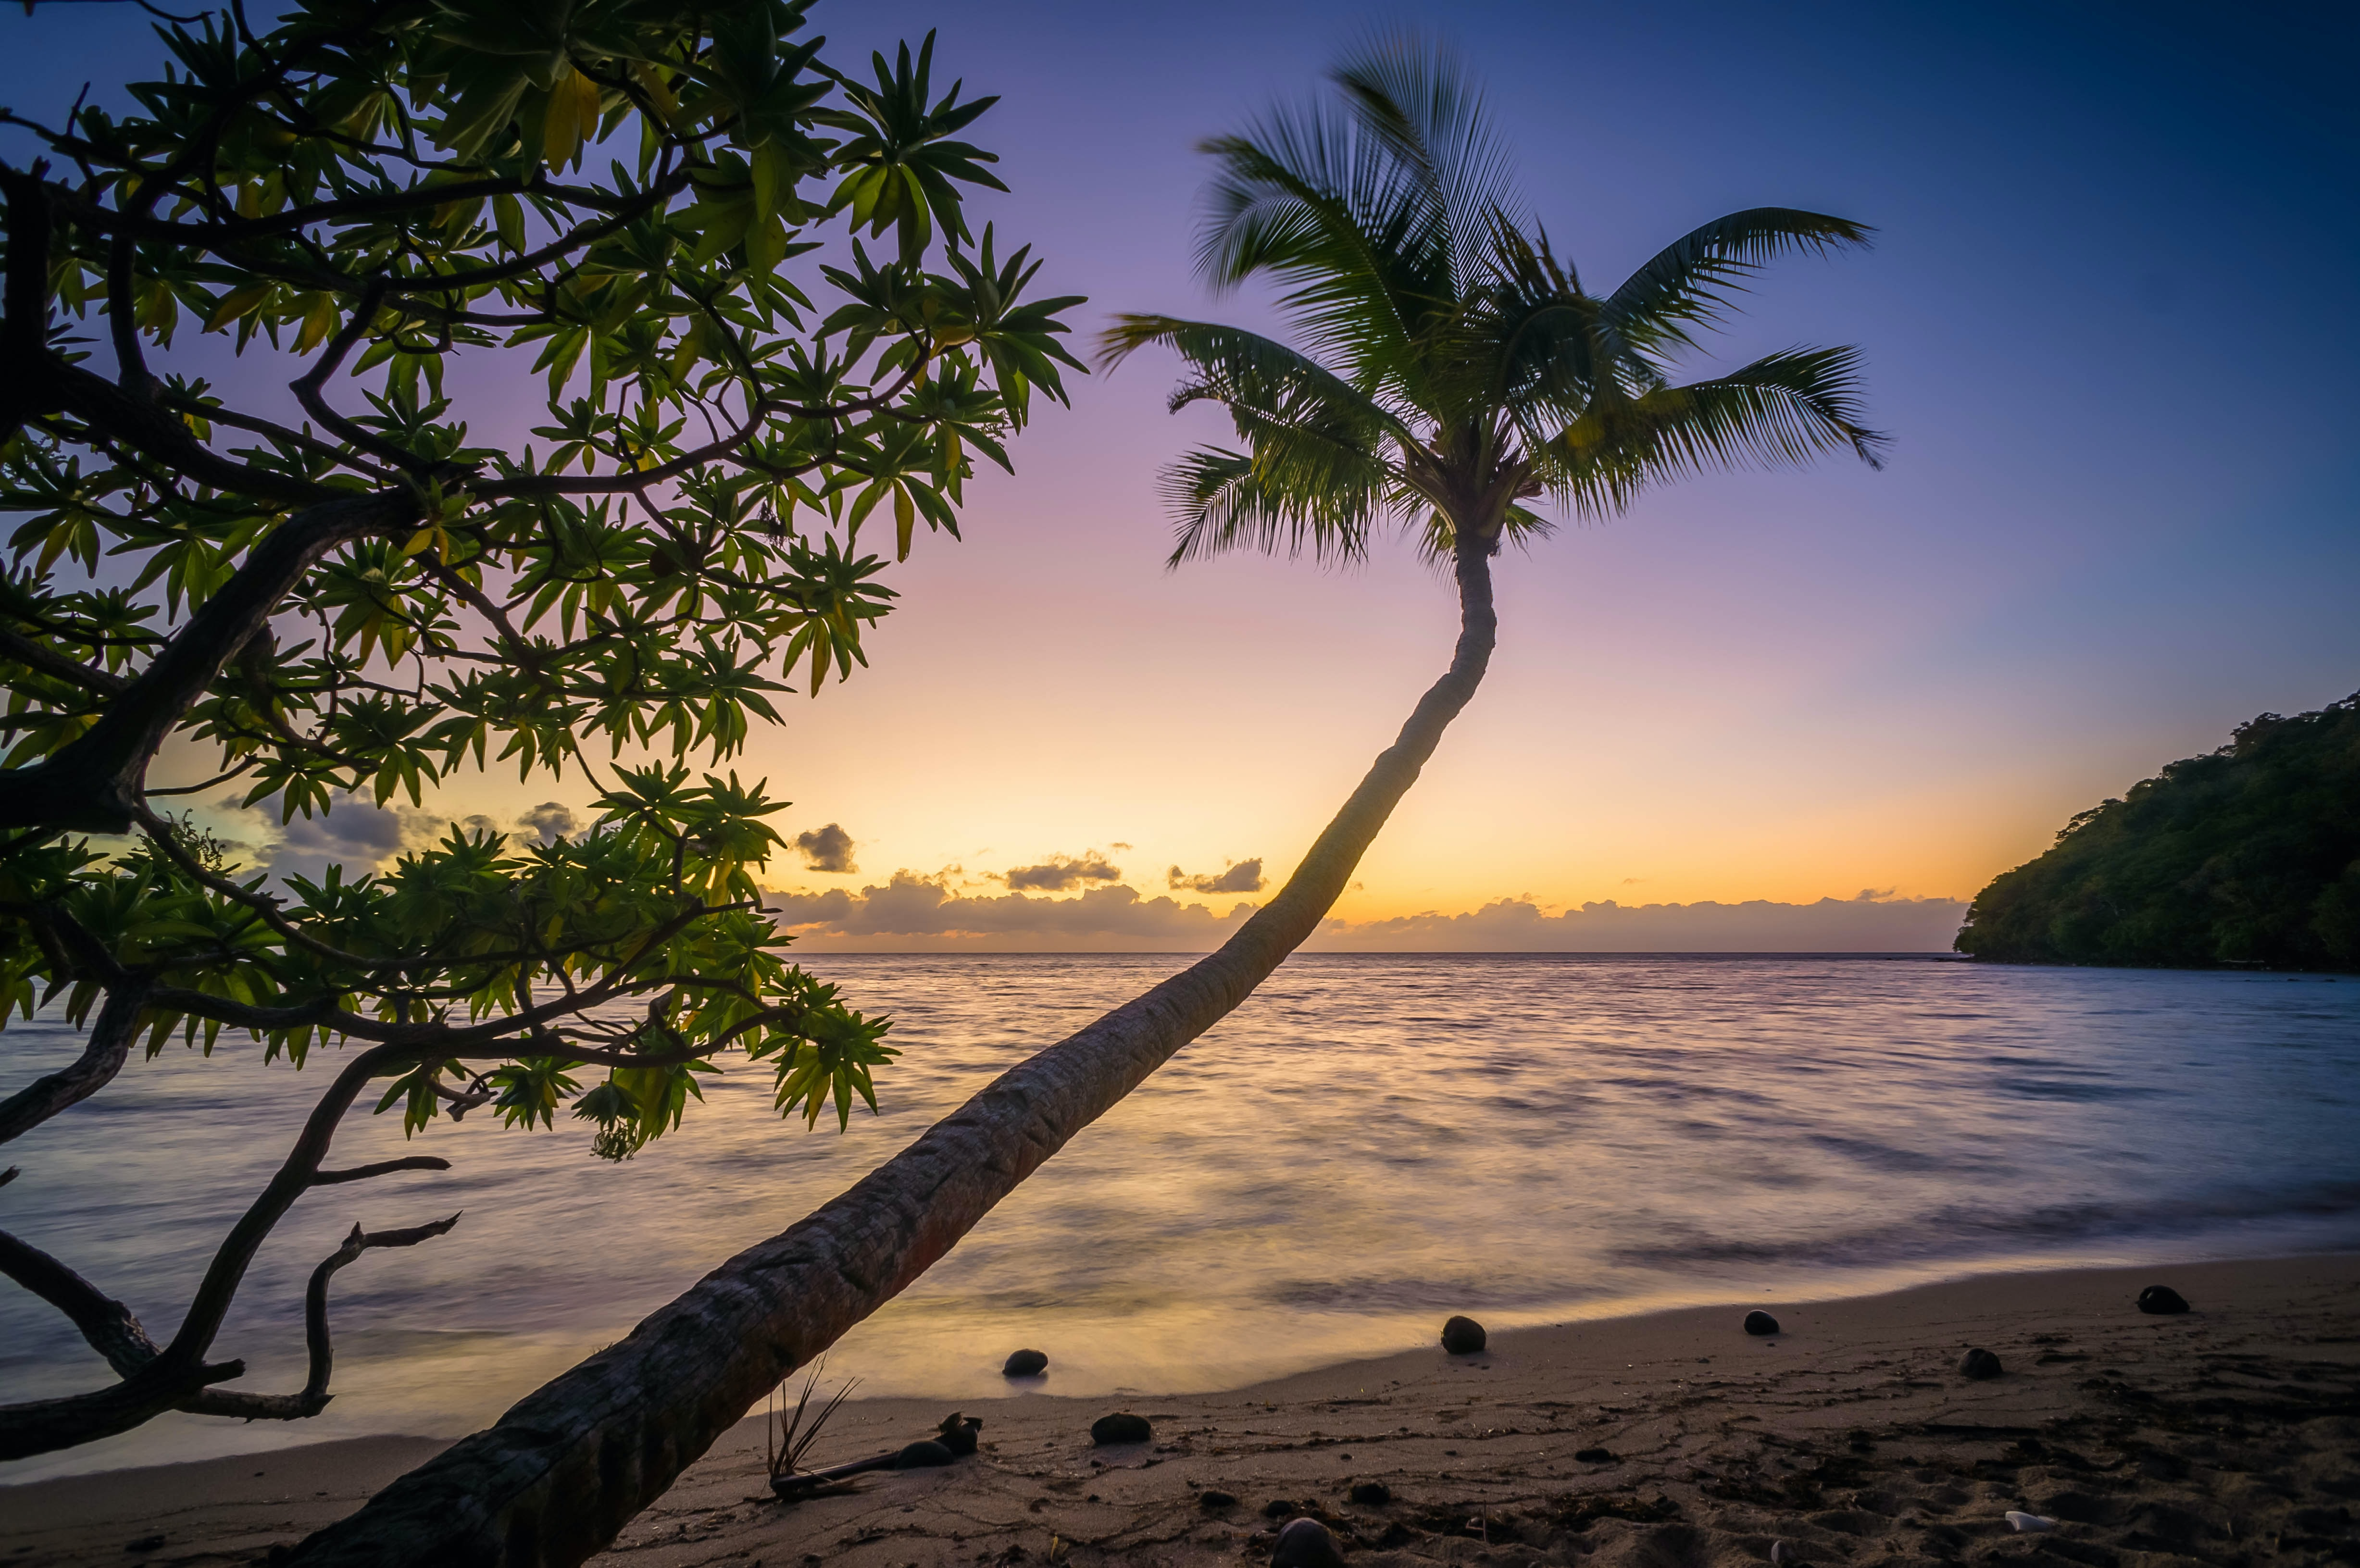 Coconut palm tree at the sandy beach by the ocean at the sunset